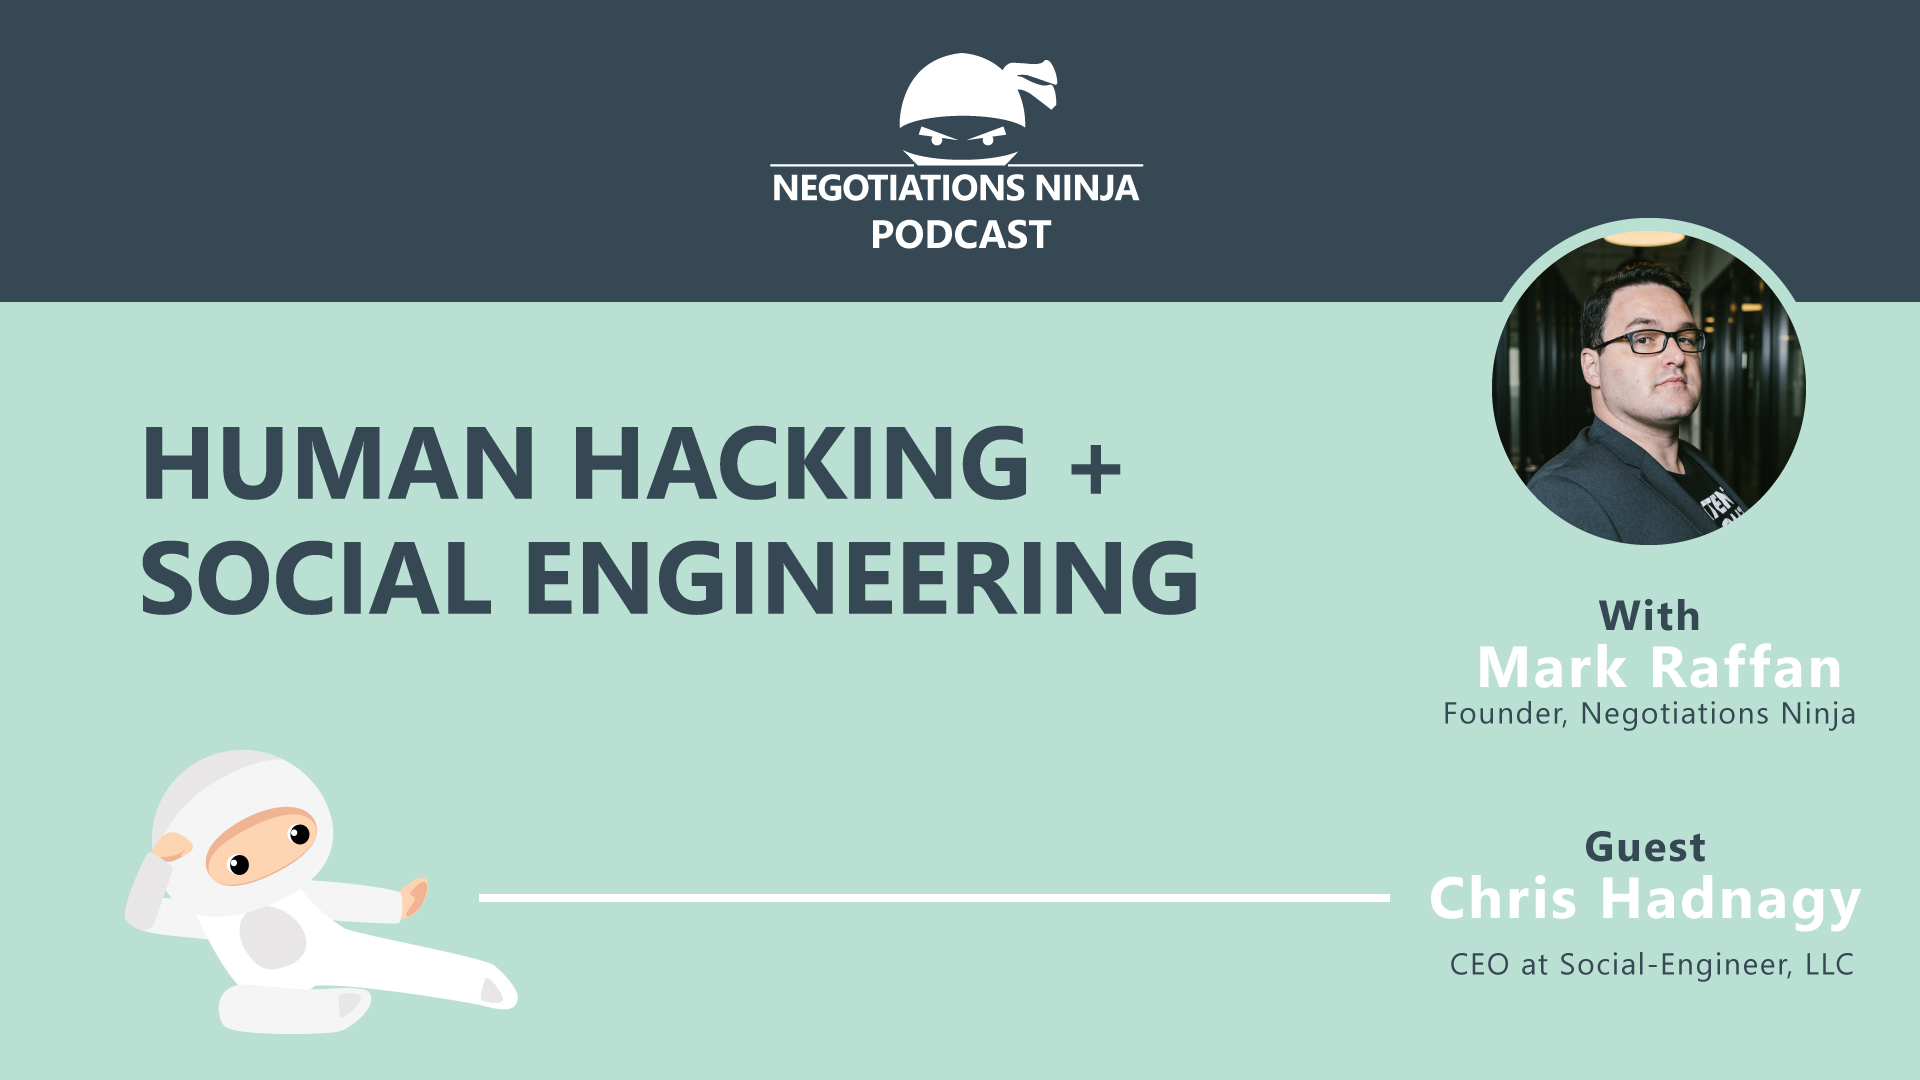 Human hacking and social engineering with Chris Hadnagy